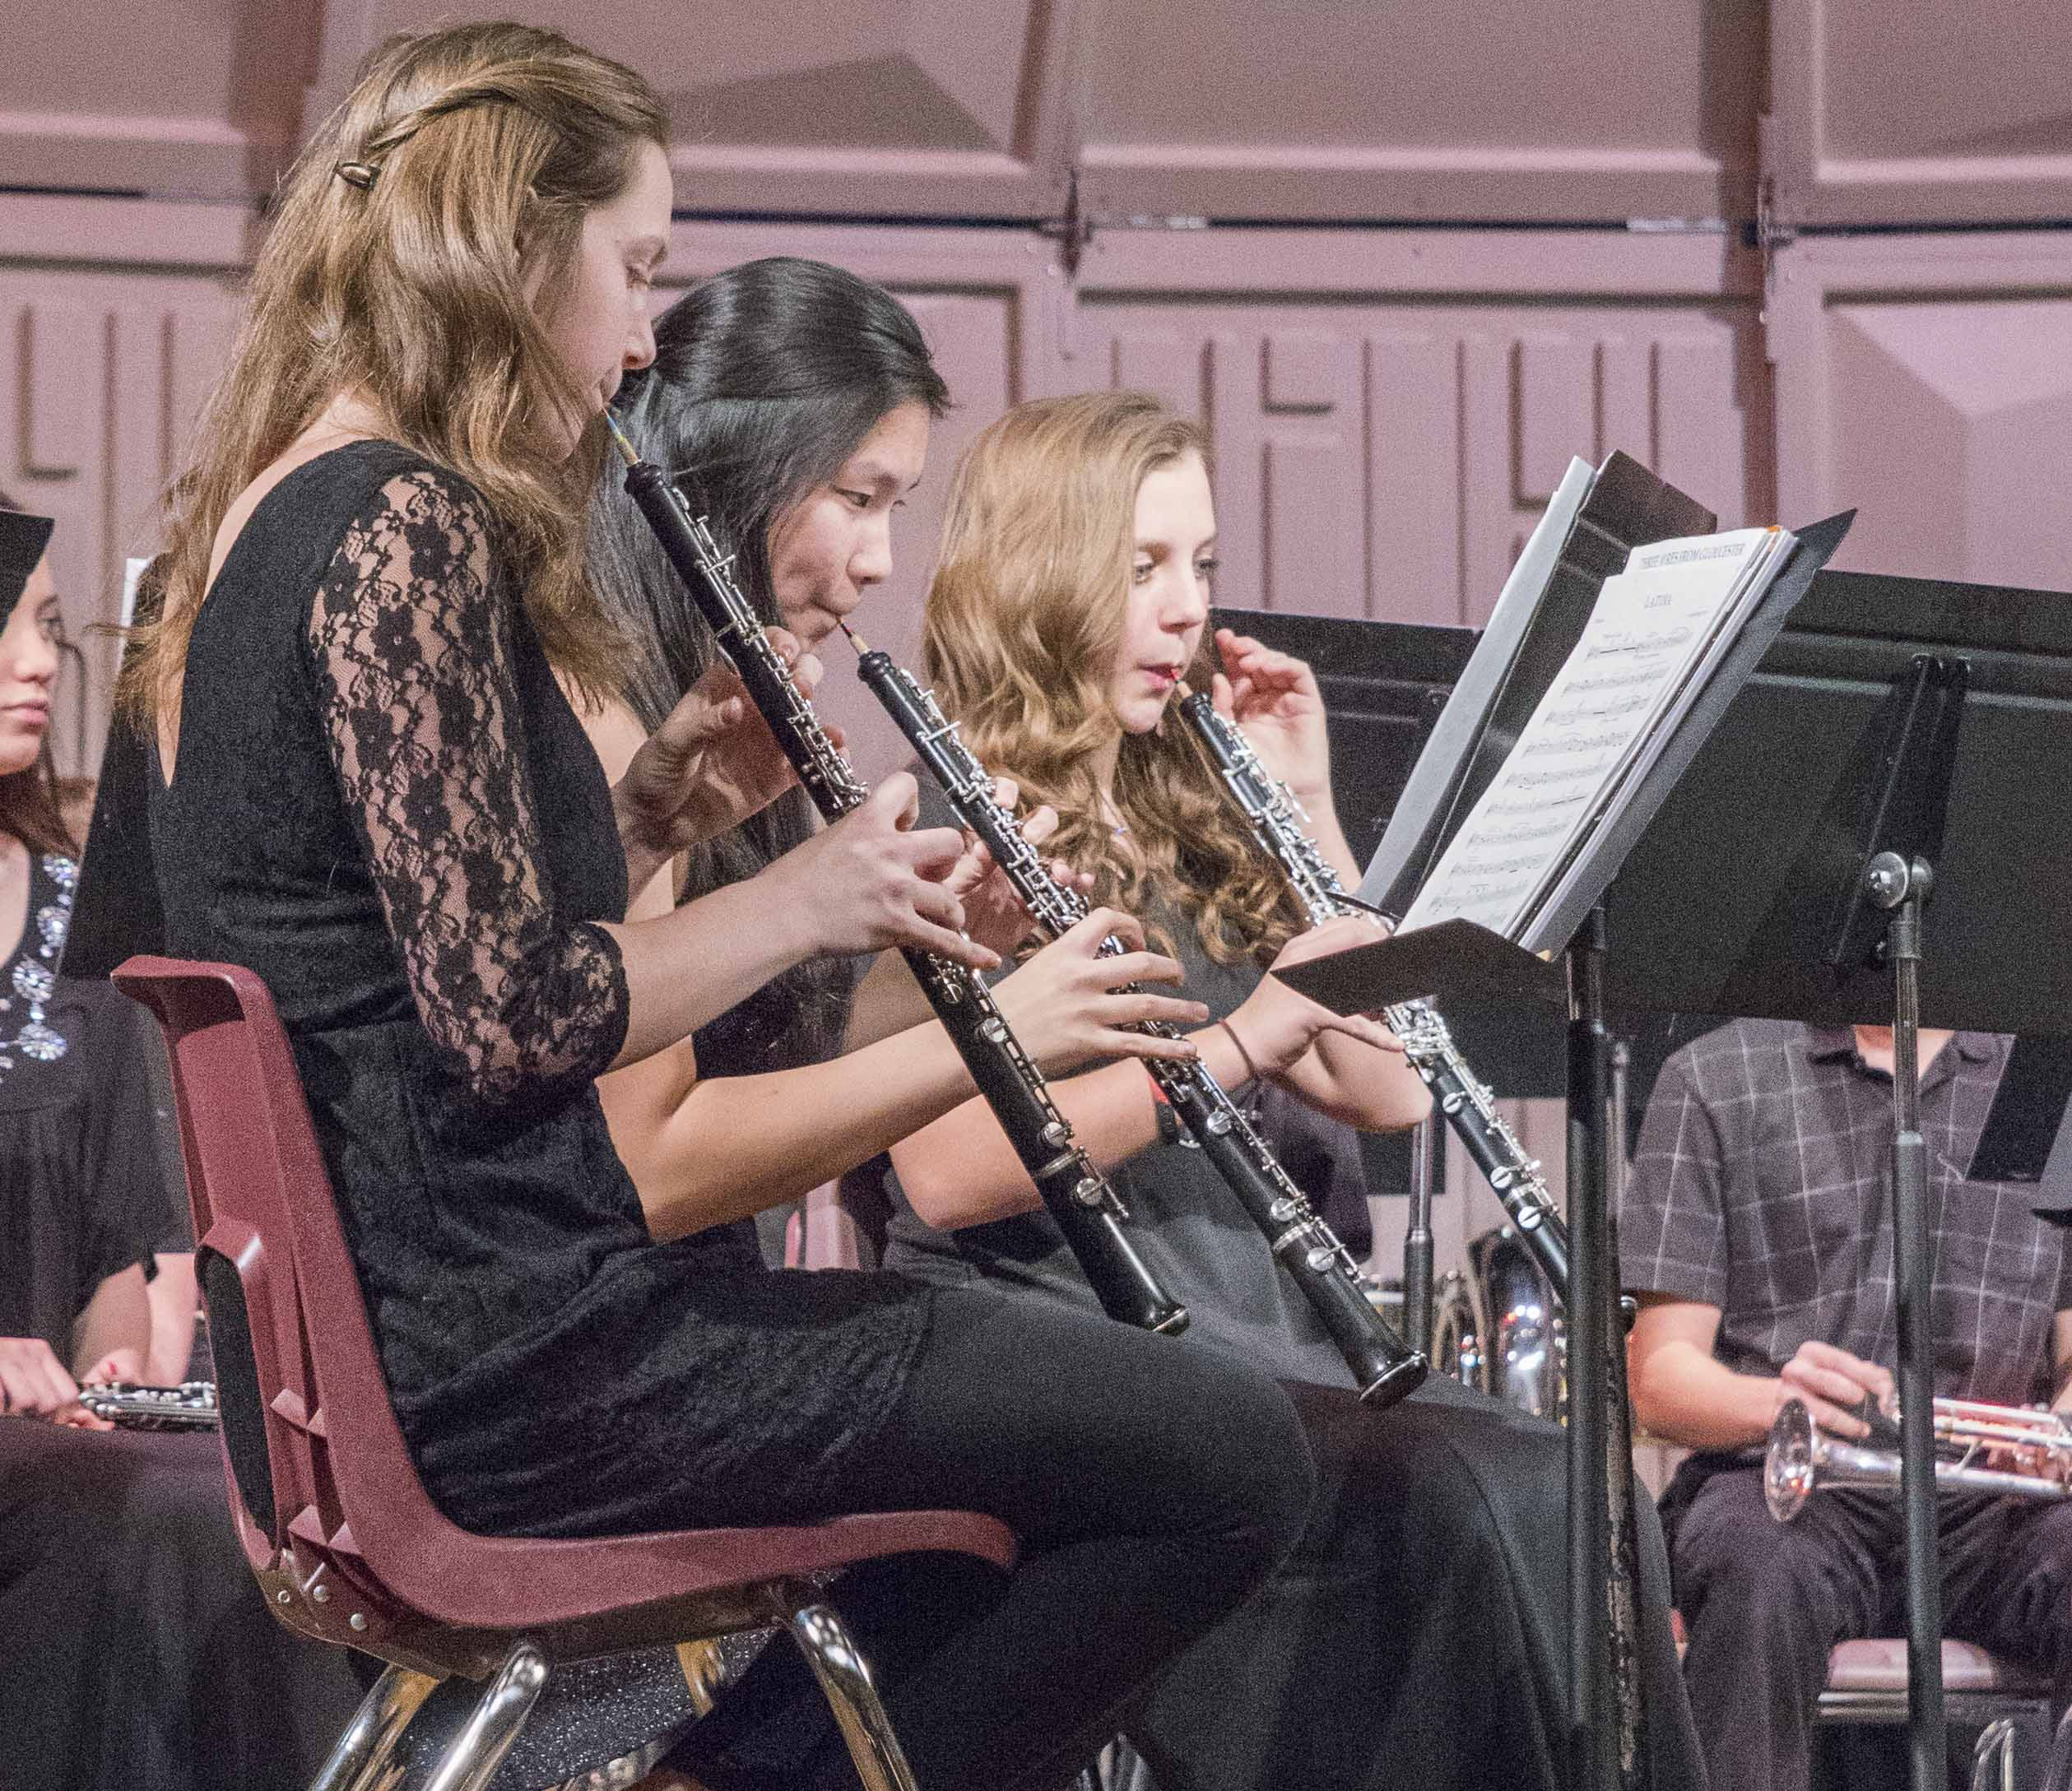 The MHS Band held its Holiday Concert on Dec. 20. Seen here are oboe players Rileigh Lambert, Clara Finger and Micah Williams. (Photos courtesy of Dianna Rucker, Rucker Photography)